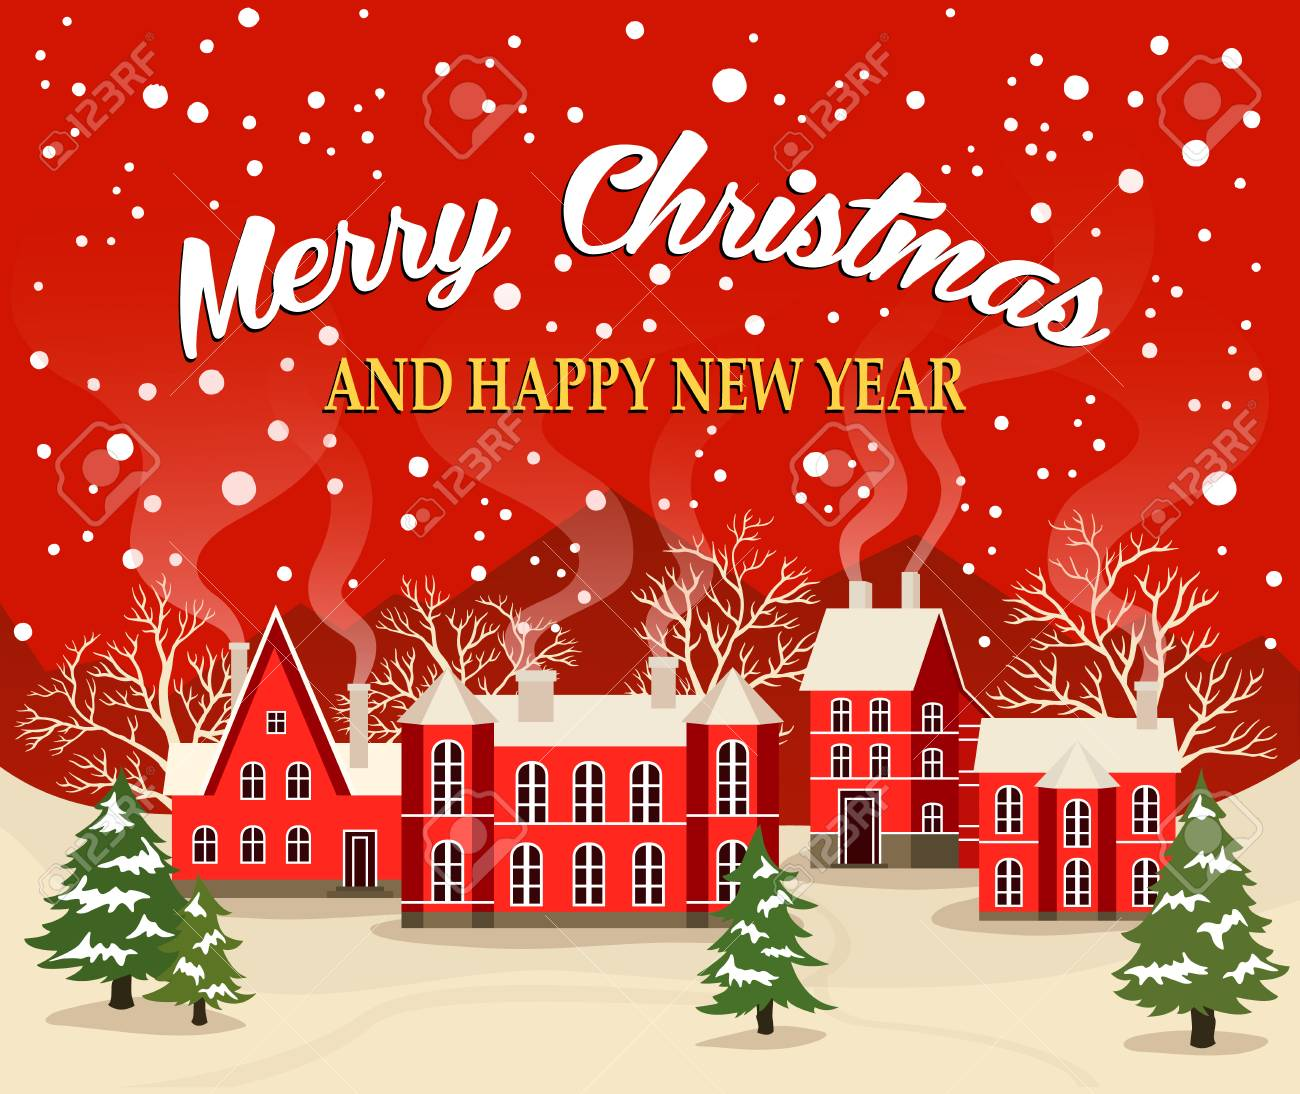 Marry christmas and happy new year greeting card illustration marry christmas and happy new year greeting card illustration xmas poster with red brick christmas kristyandbryce Image collections